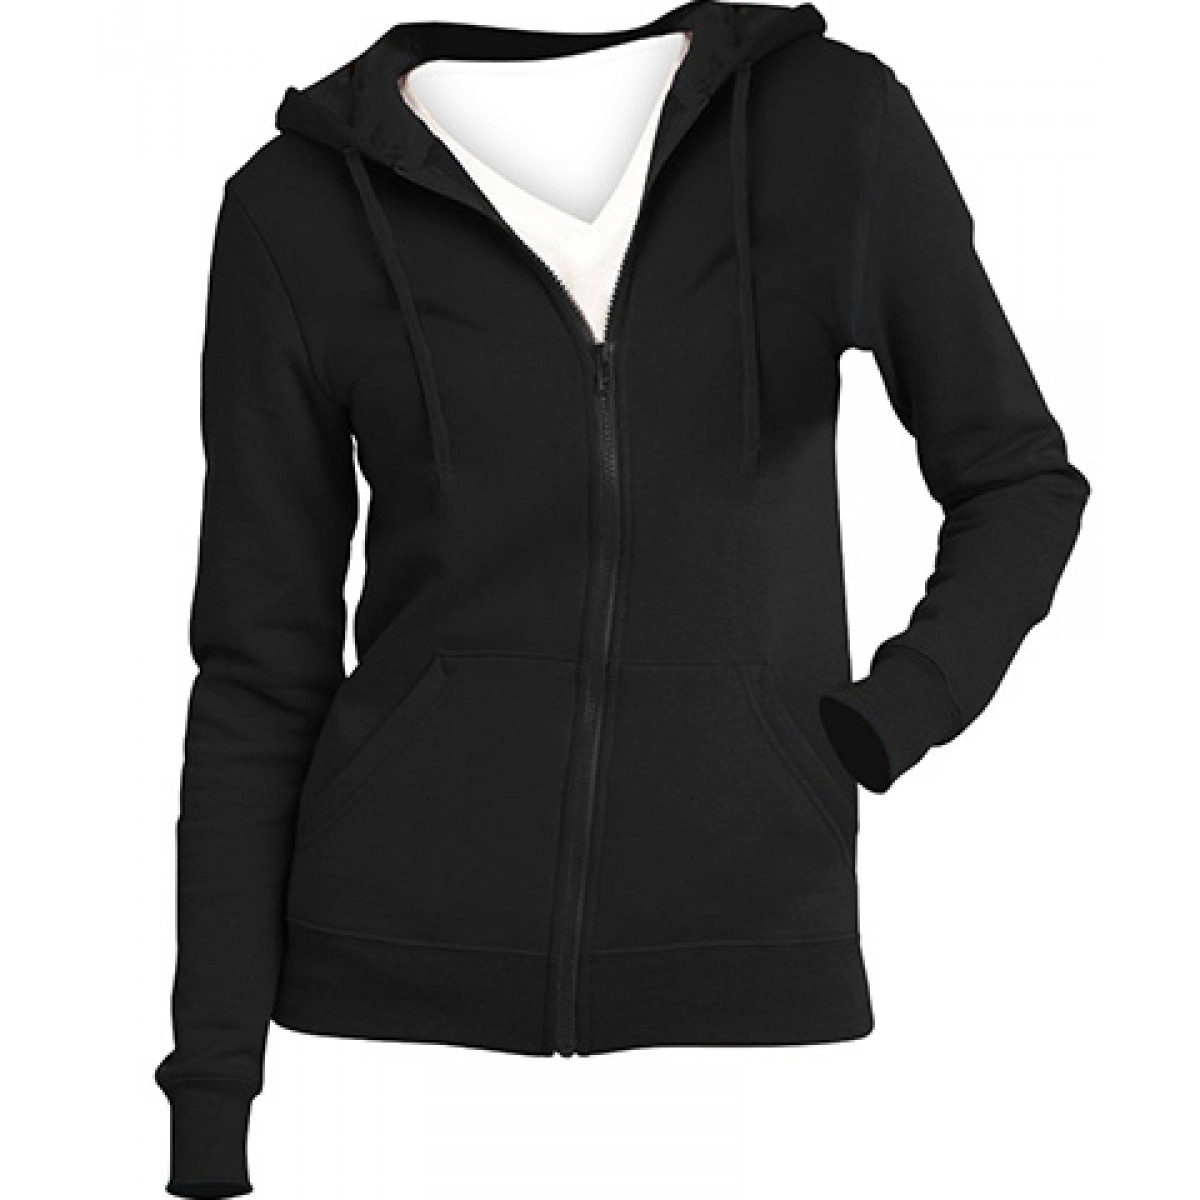 Juniors Full-Zip Hoodie-Black-S